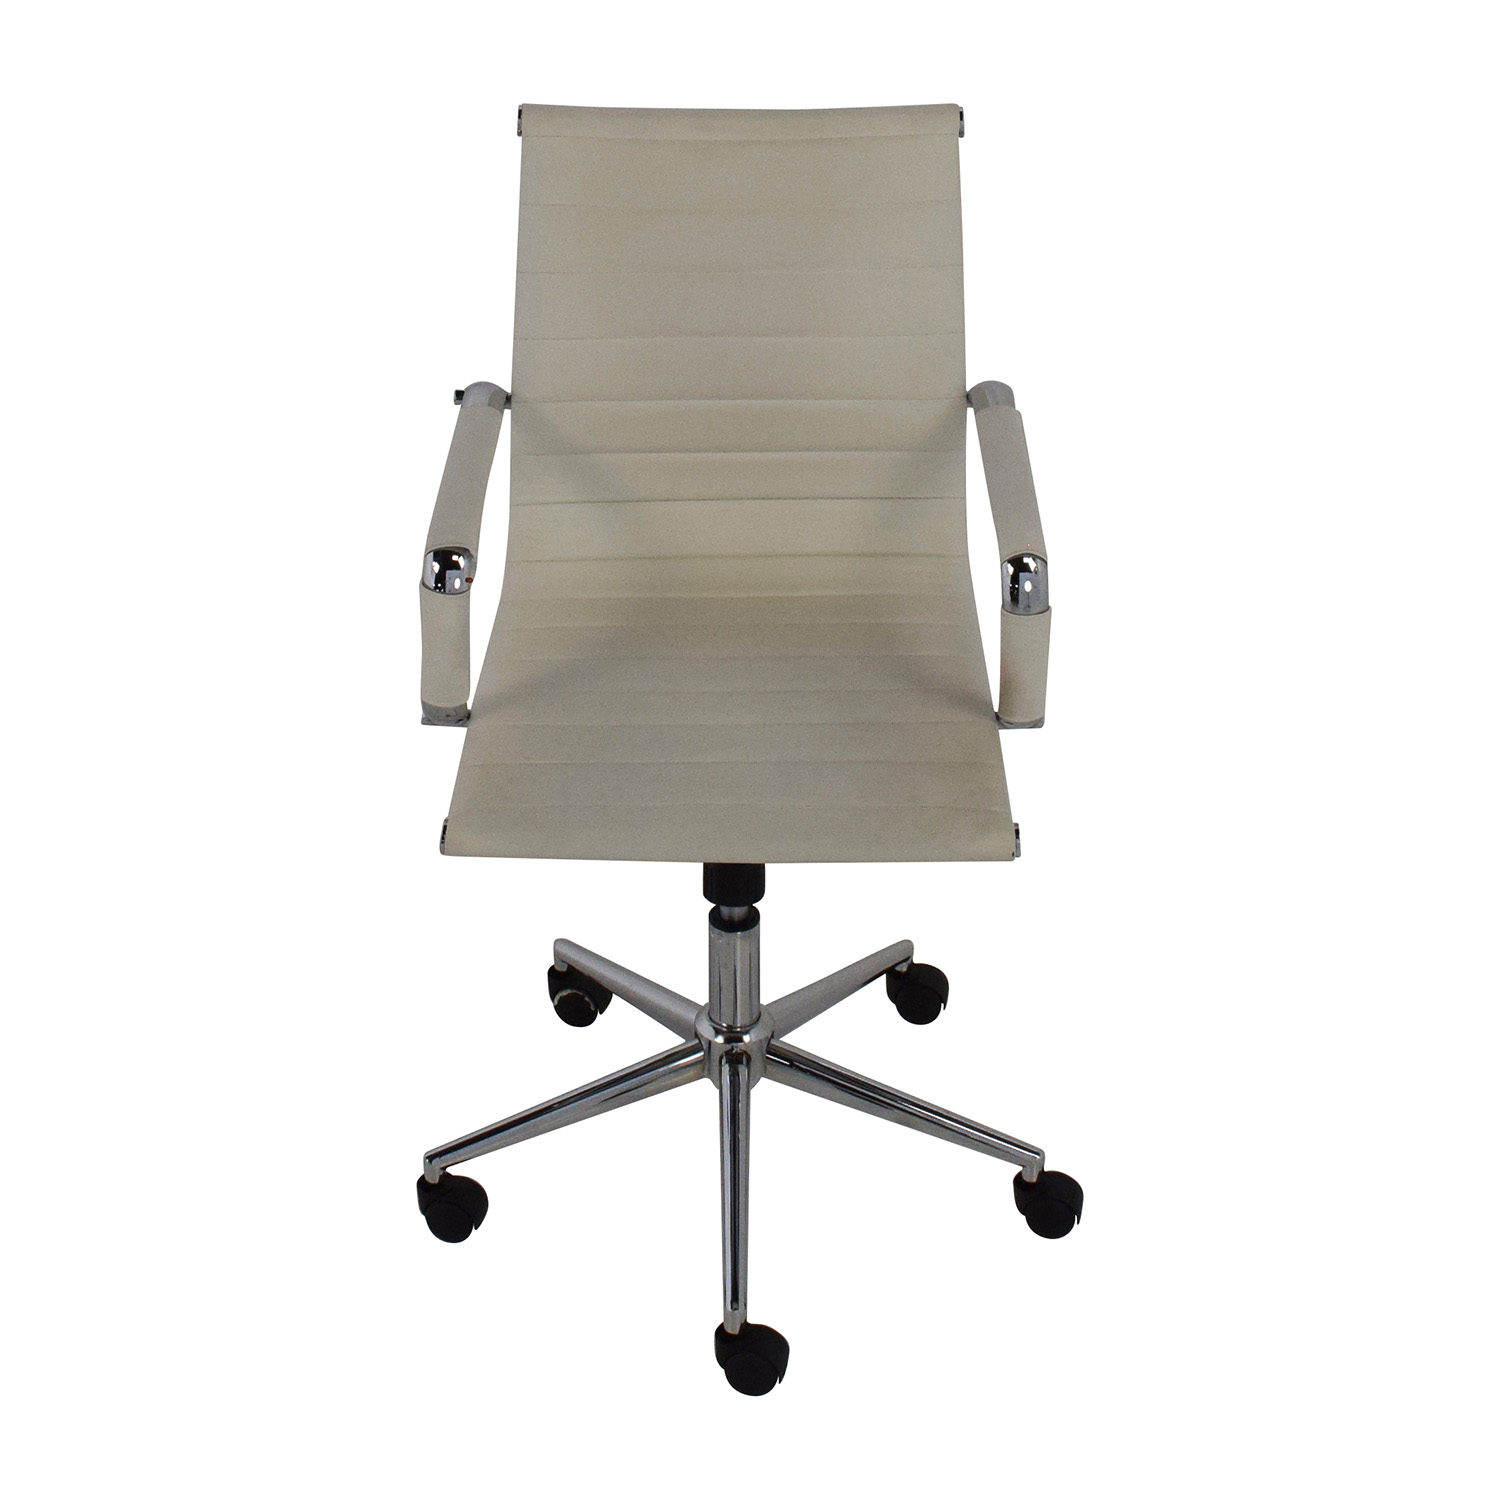 buy 2xhome 2Xhome Modern Mid Back White Faux Leather Office Chair online